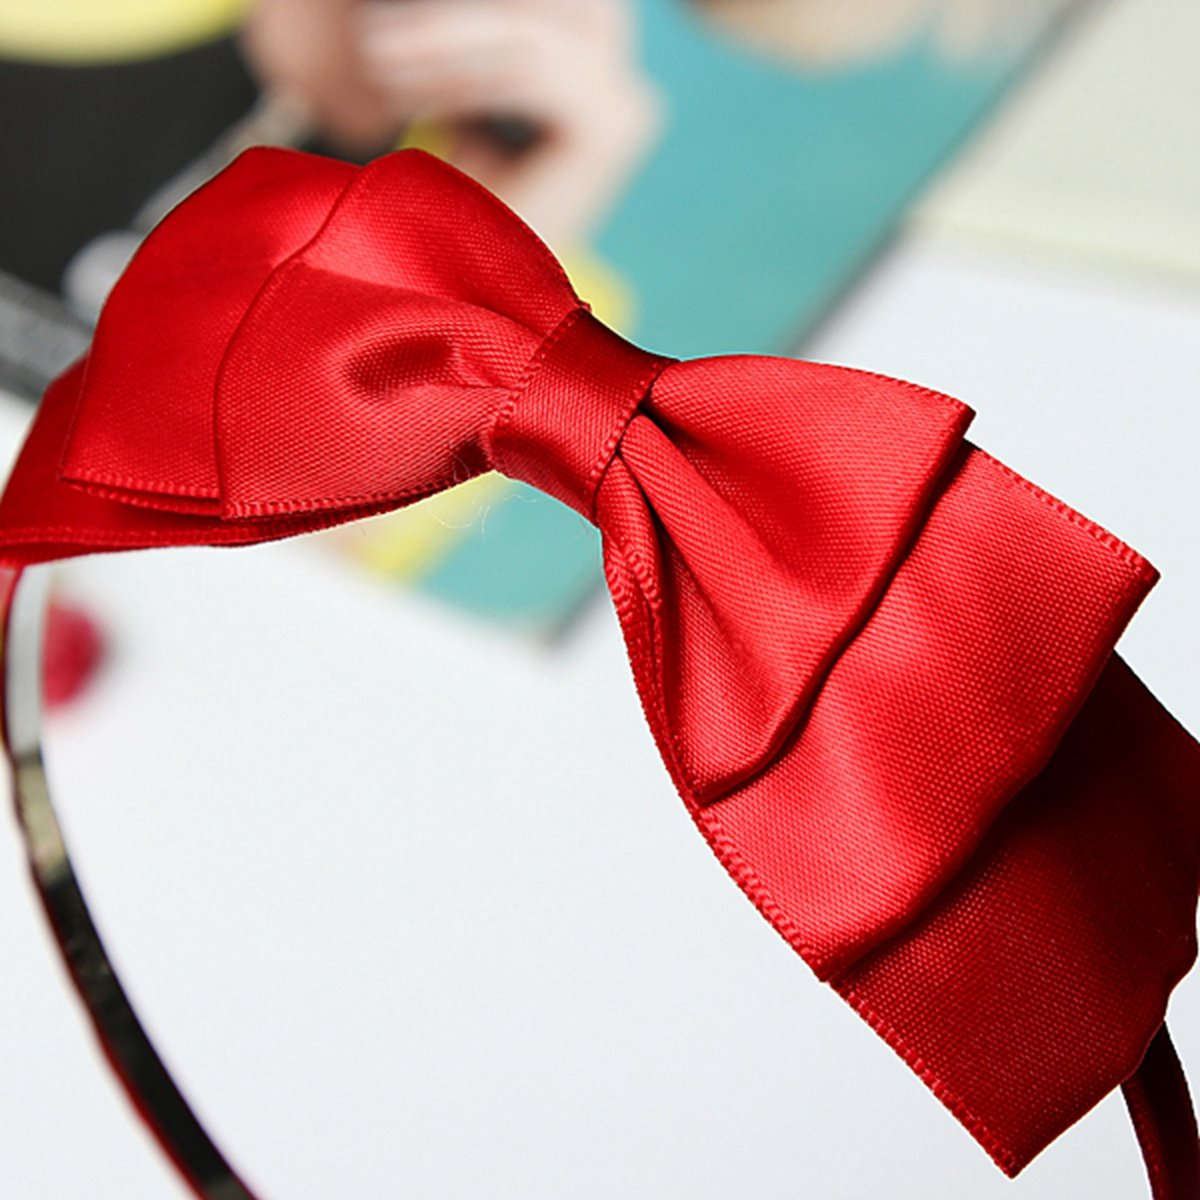 Bow Hairband Soft Elastic Bowknot Headband Hair Accessories For Children Adults Red